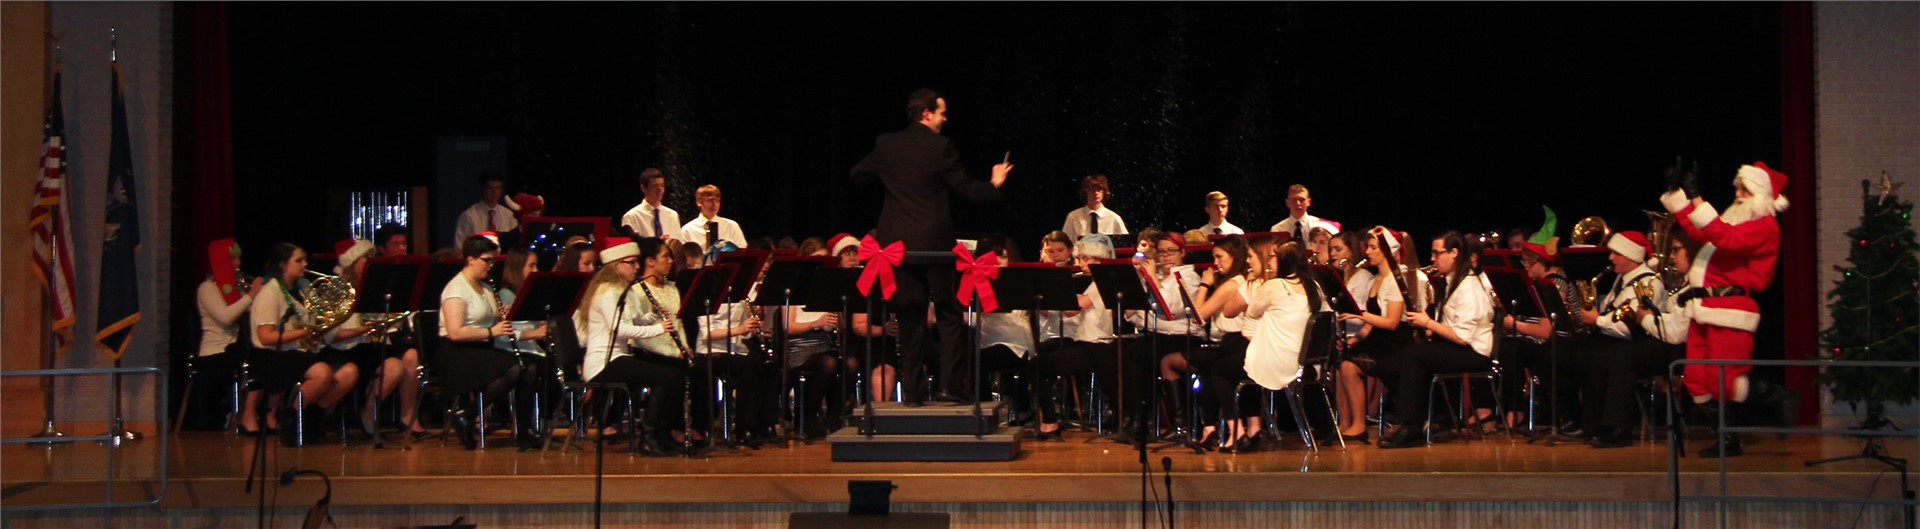 Holiday Concert 41